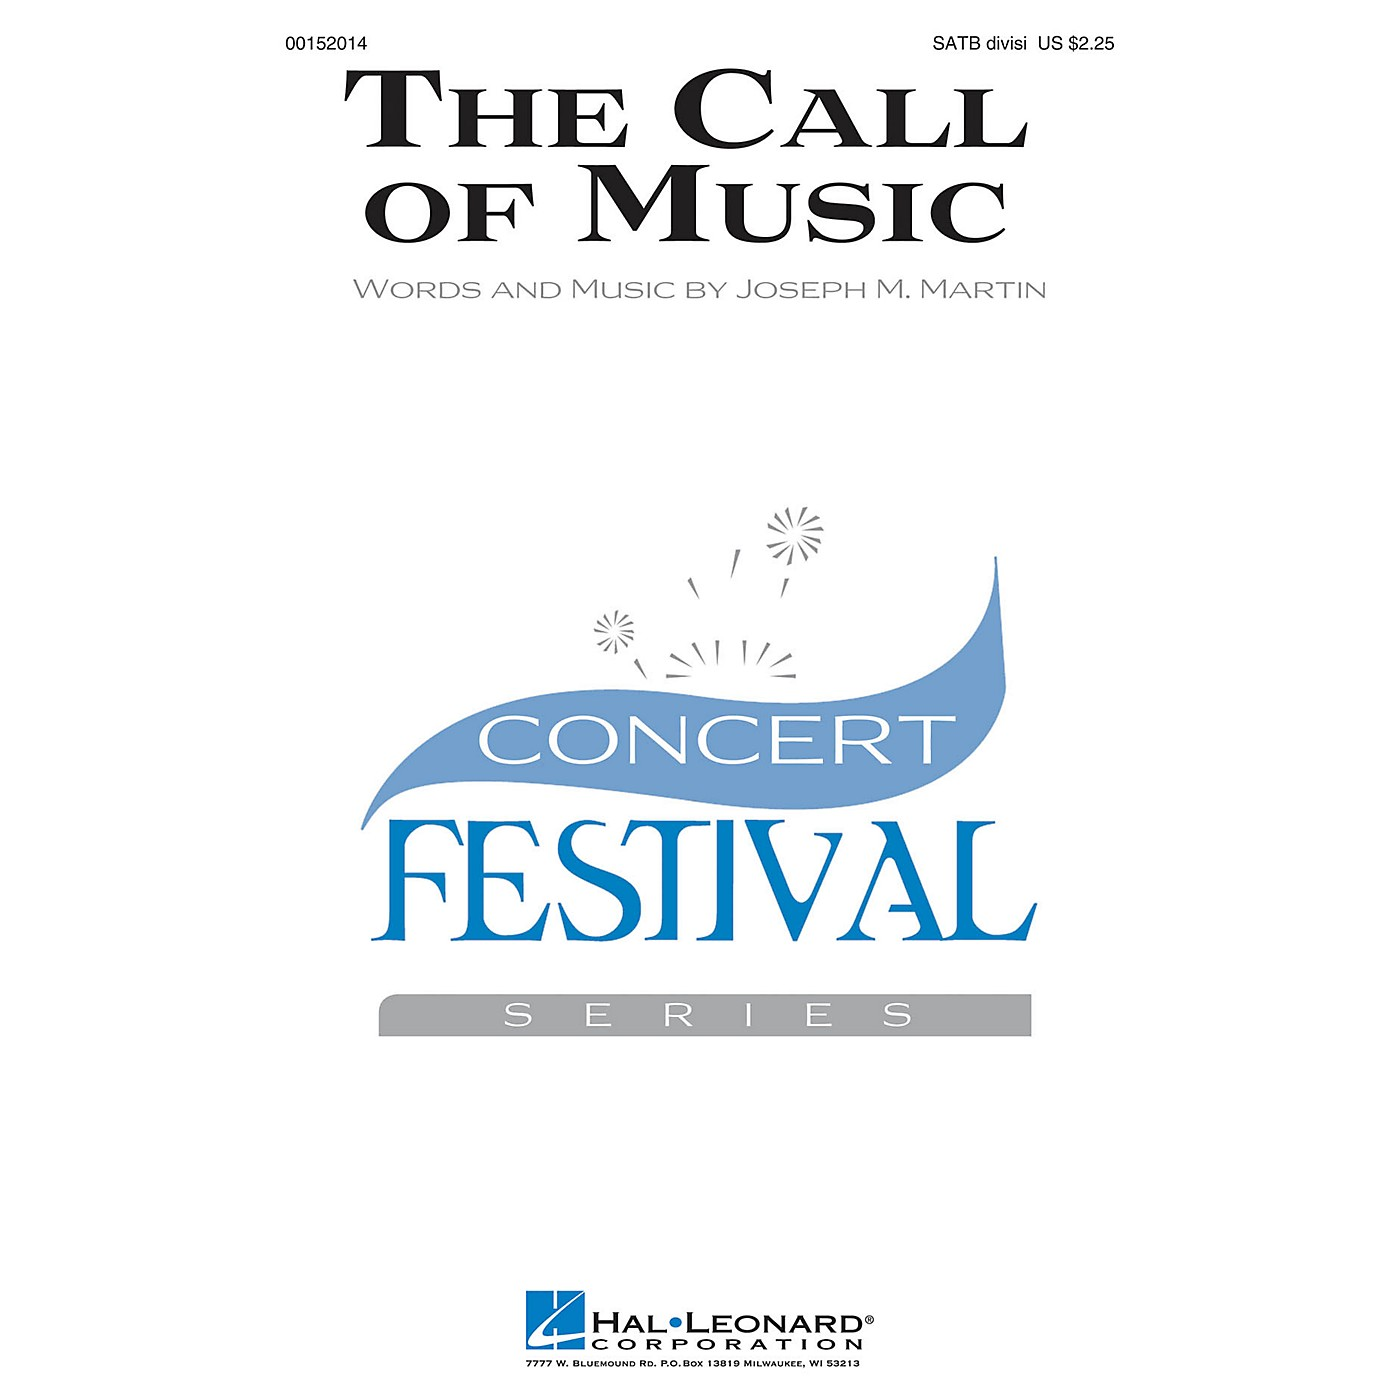 Hal Leonard The Call of Music SATB Divisi composed by Joseph M. Martin thumbnail